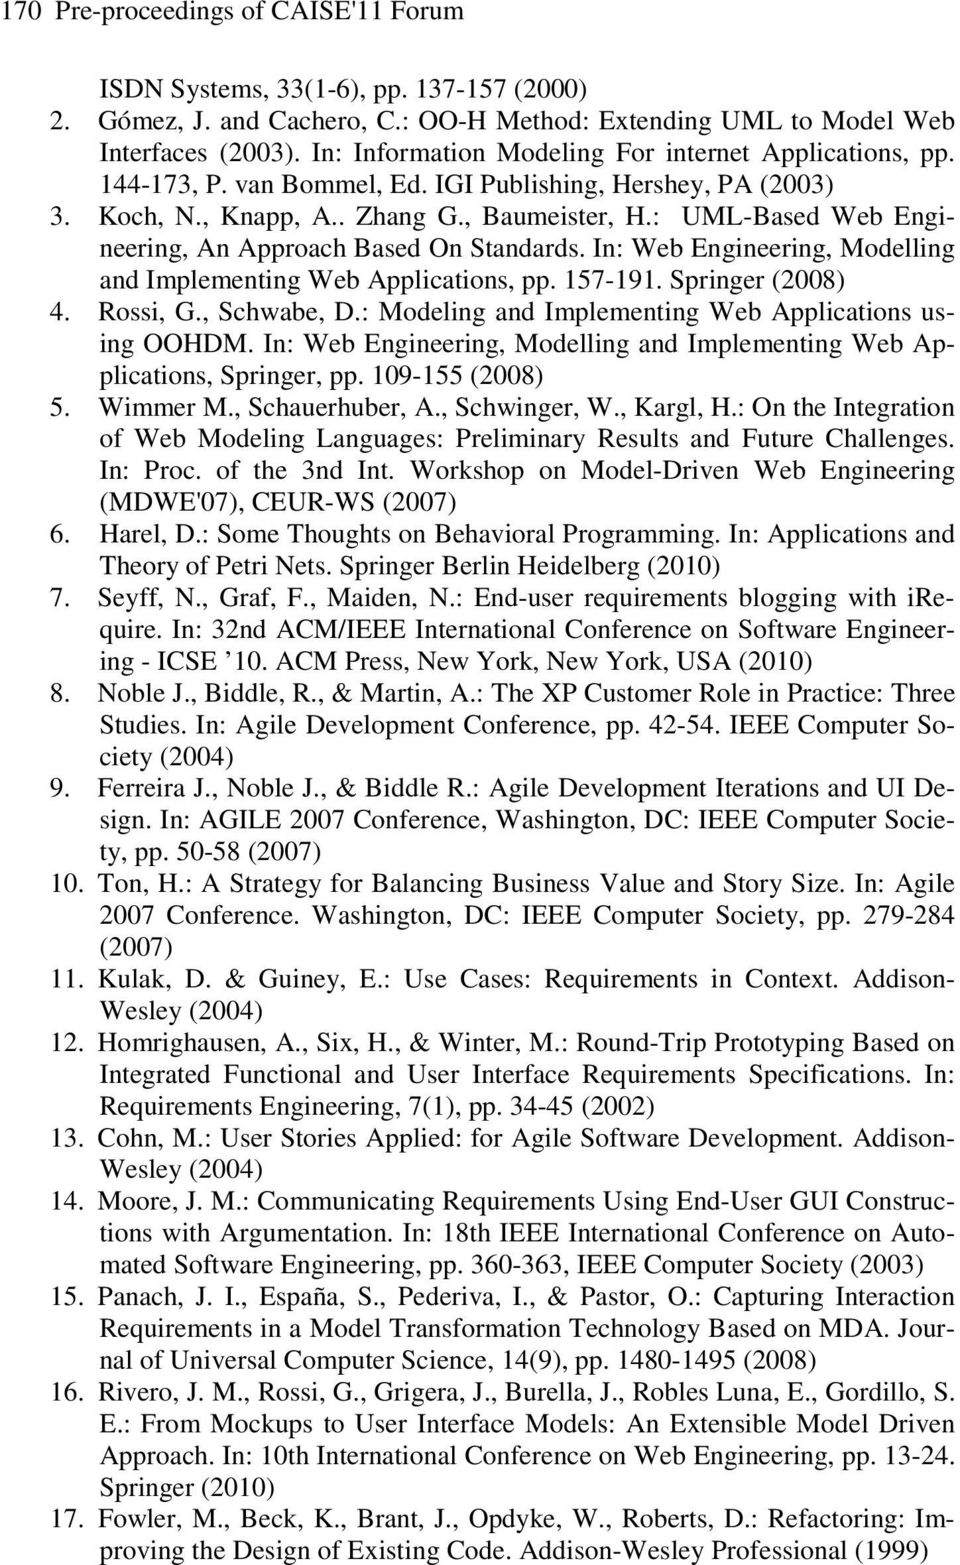 : UML-Based Web Engineering, An Approach Based On Standards. In: Web Engineering, Modelling and Implementing Web Applications, pp. 157-191. Springer (2008) 4. Rossi, G., Schwabe, D.